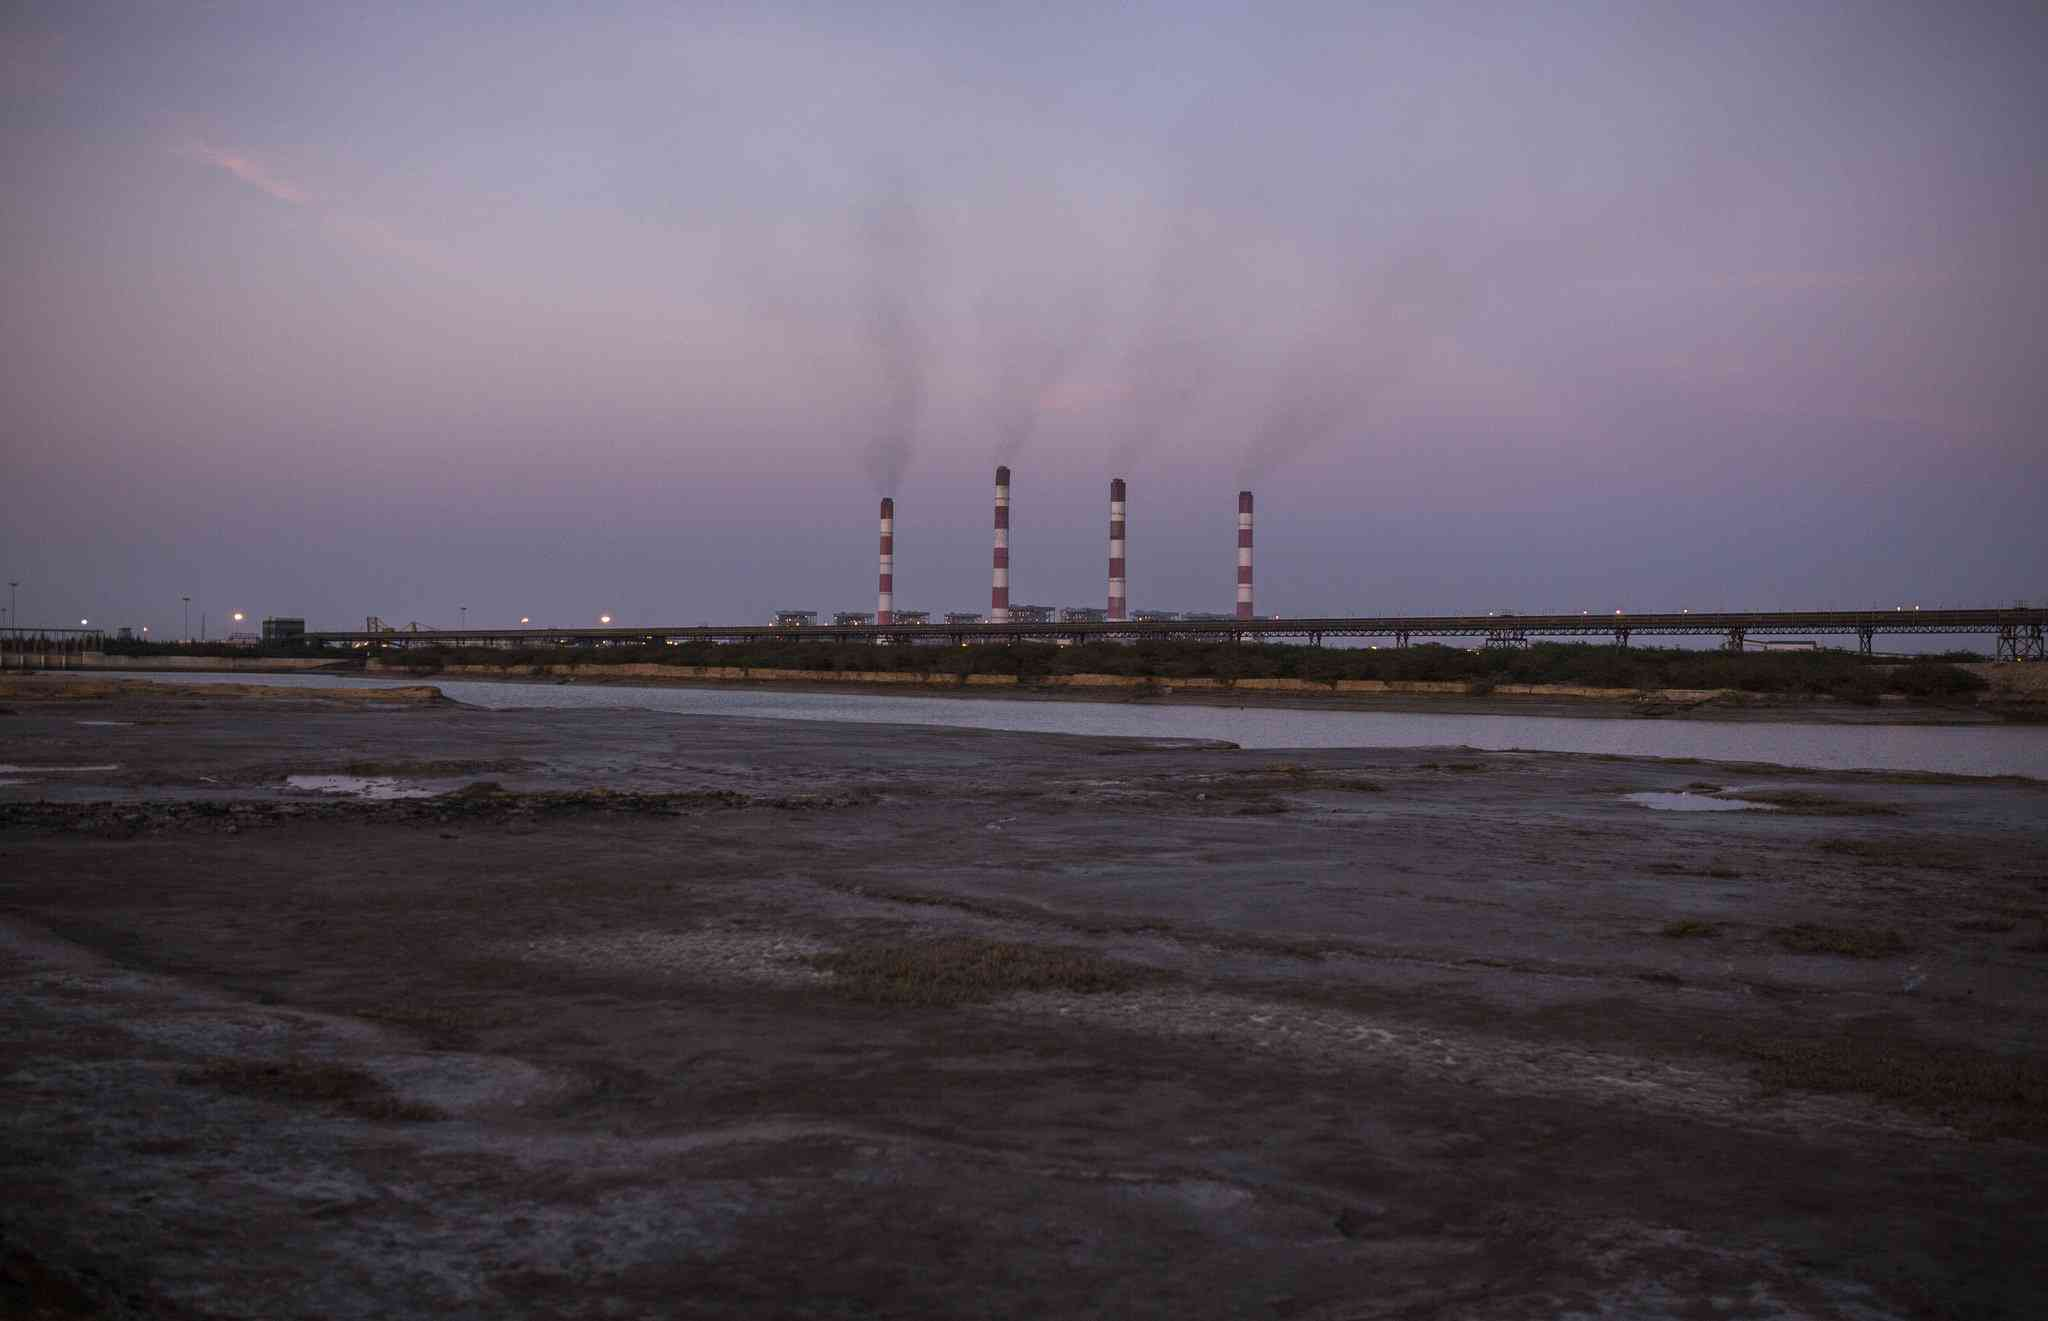 Adani power plant in Mundra and conveyor belt. Photo credit: Programme for Social Action India/Flickr [Licensed under CC-BY-SA-2.0]